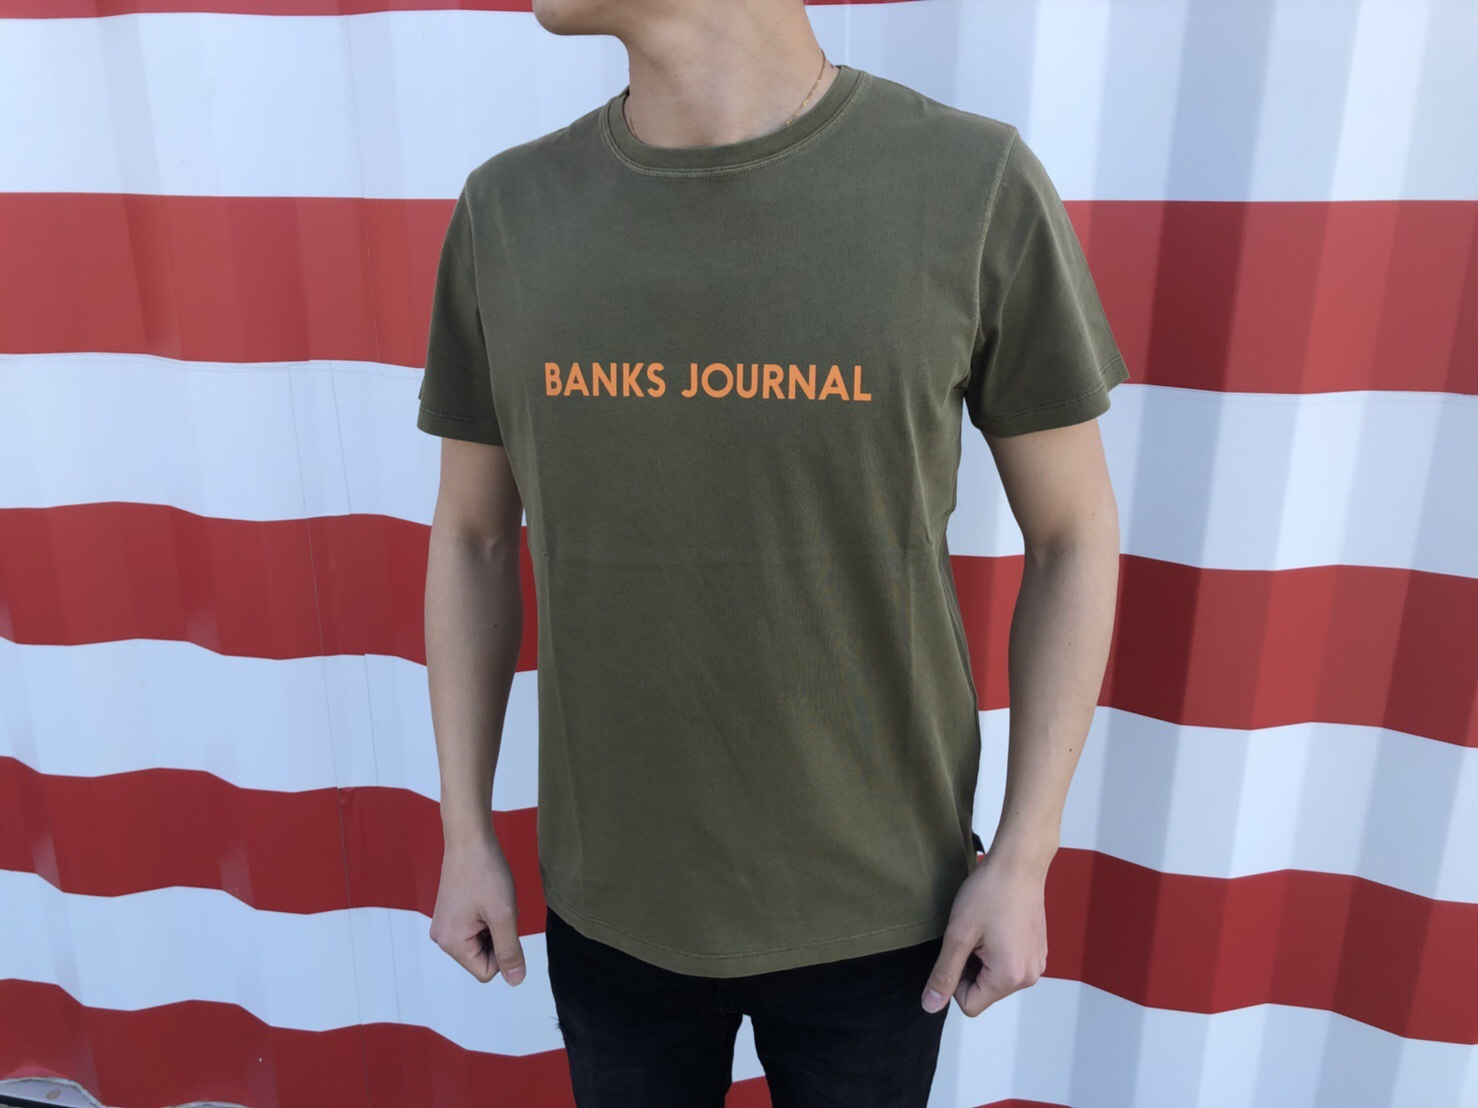 BANKS JOURNAL Tシャツ (olive green)